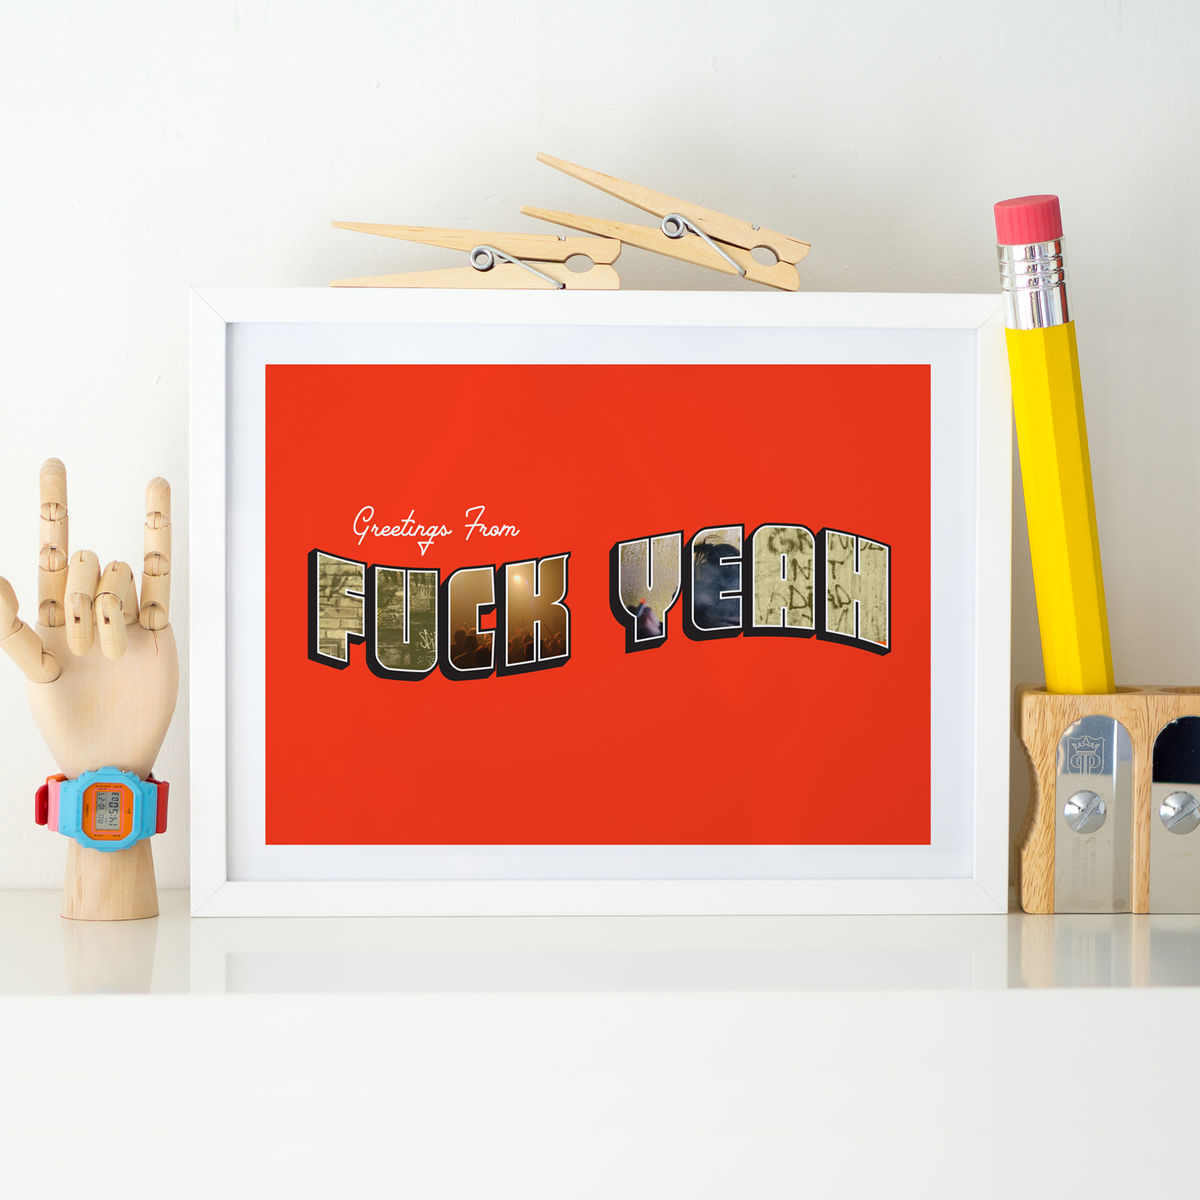 'Greetings from Fuck Yeah' Art Print - product image